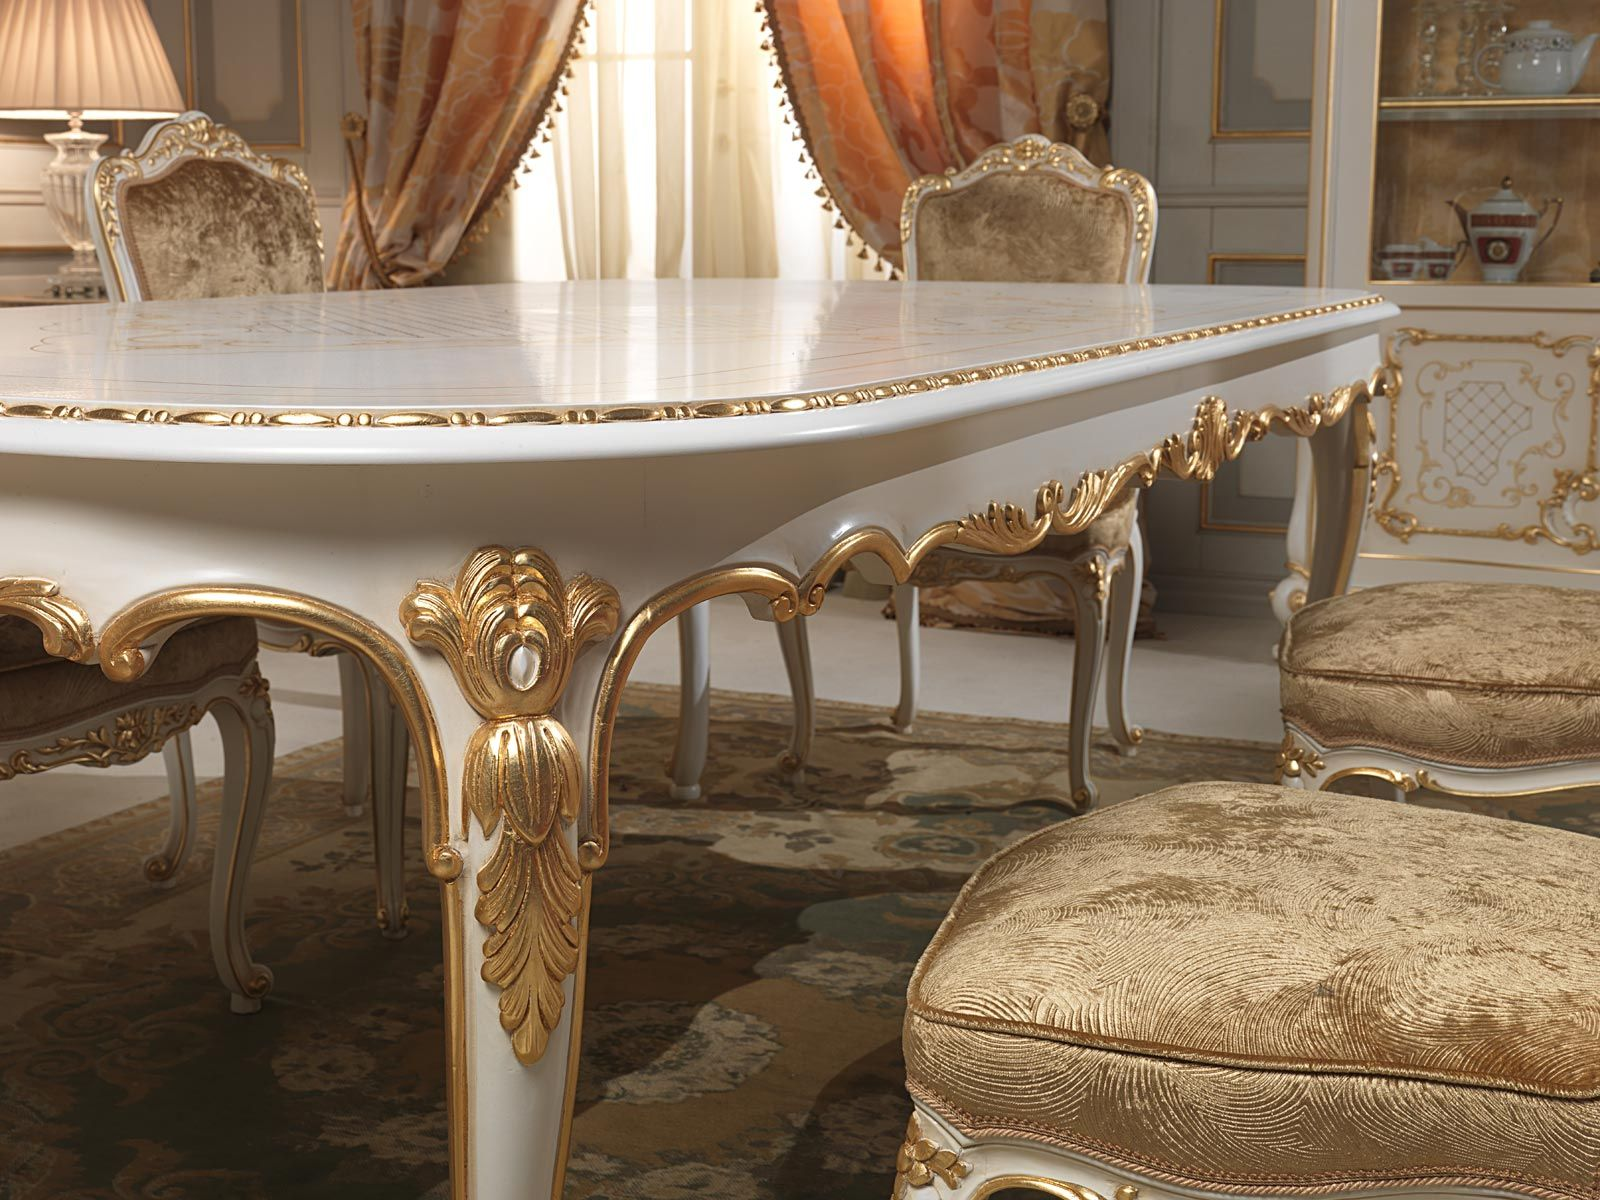 Dining Table In Louis XV Style With Golden Carvings Executed By Hand Venice Classic Luxury